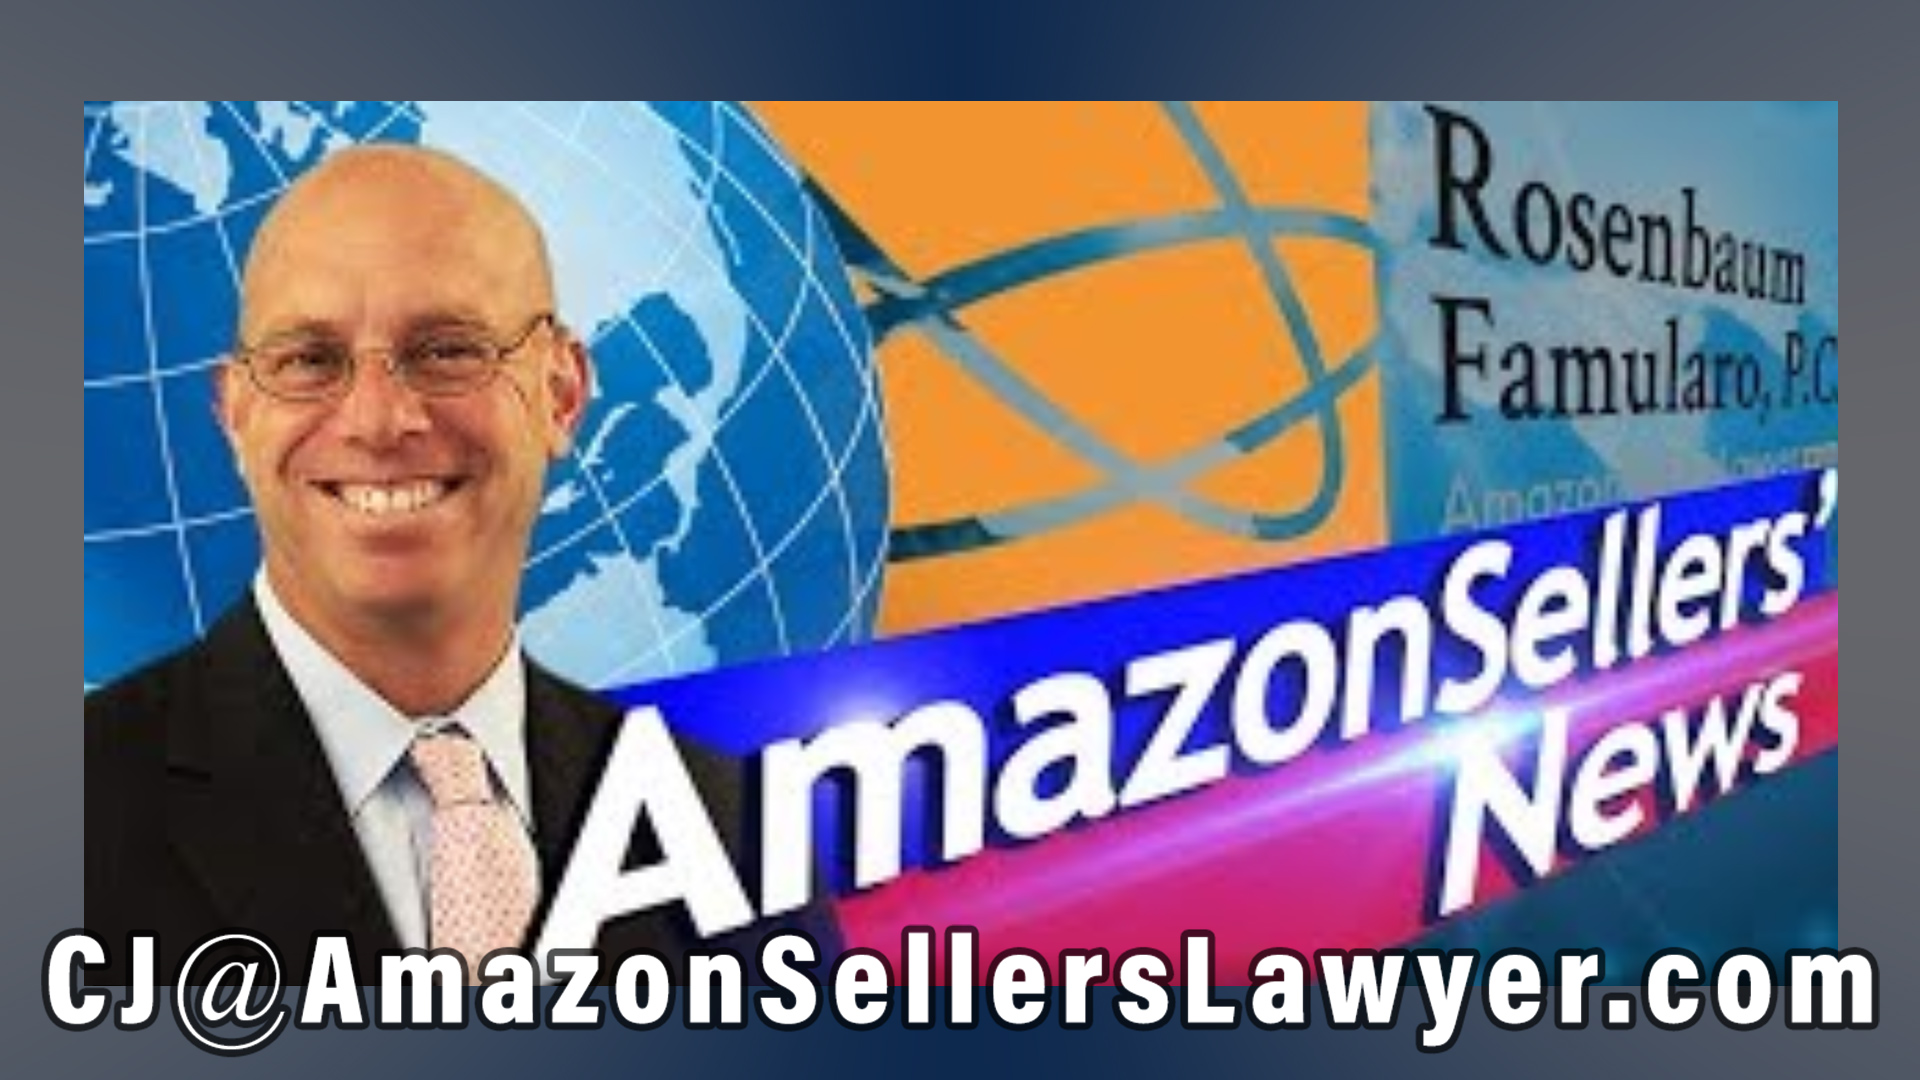 IP Complaints by Brands, Brand Enforcement, Events for Amazon Sellers